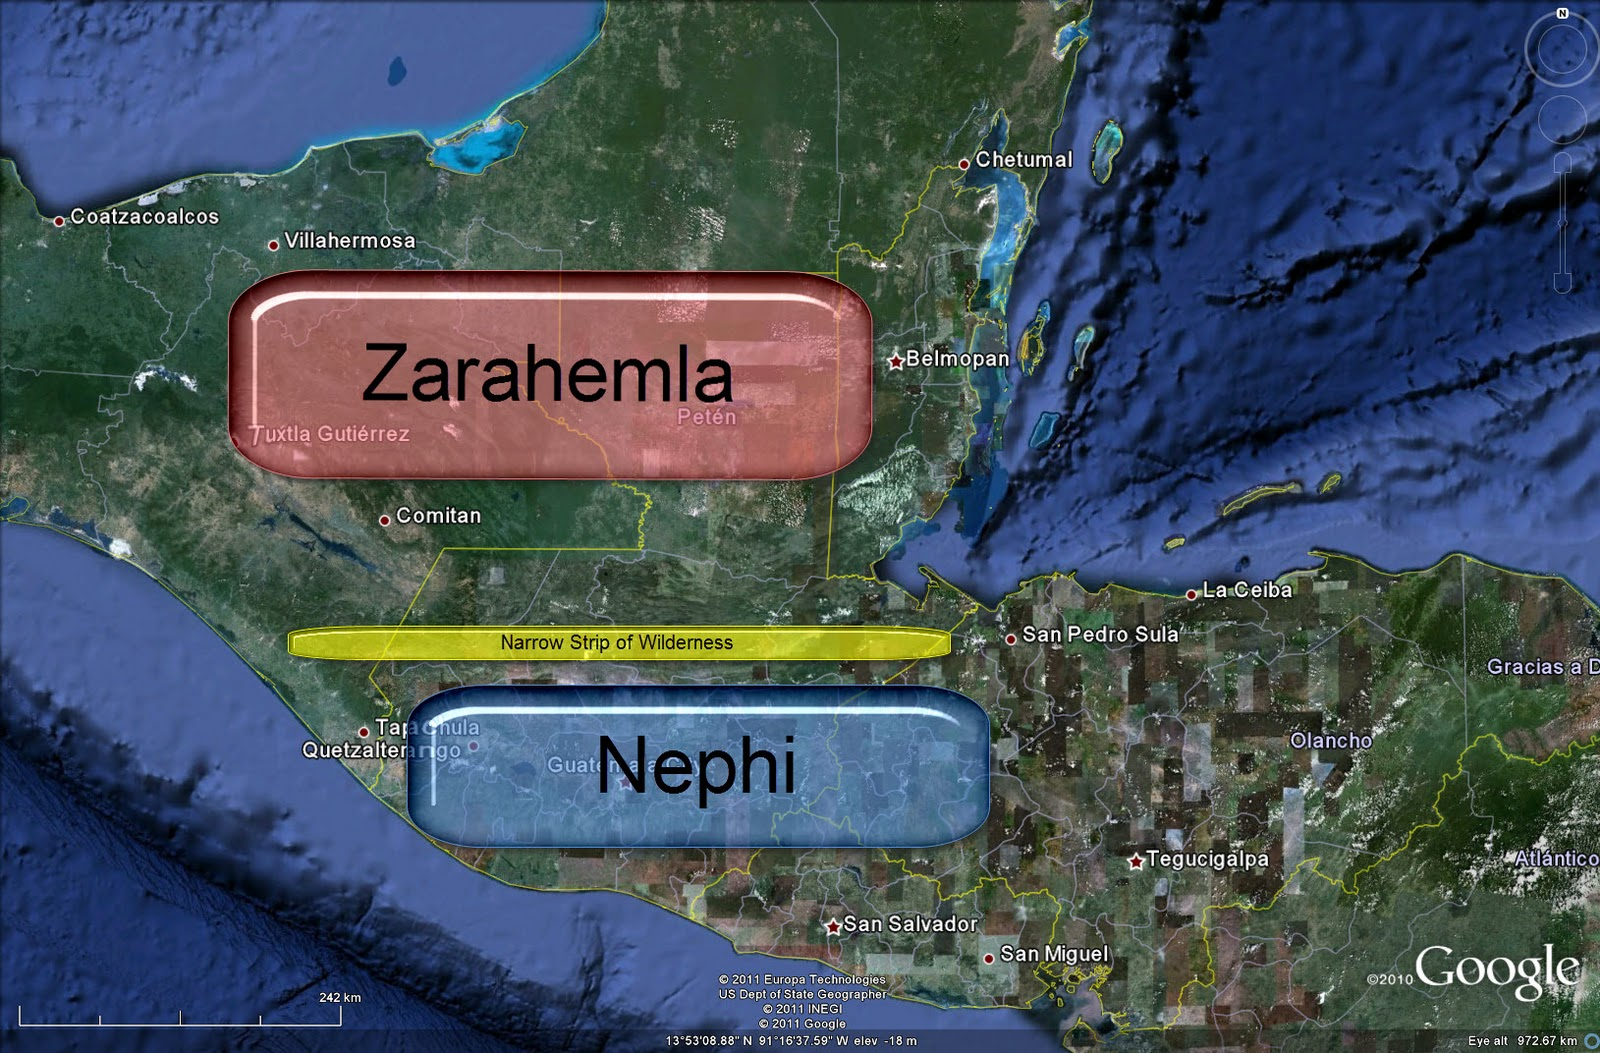 General Lands Of Nephi In Blue And Zarahemla In Red During The Middle Later Part Of Nephite History